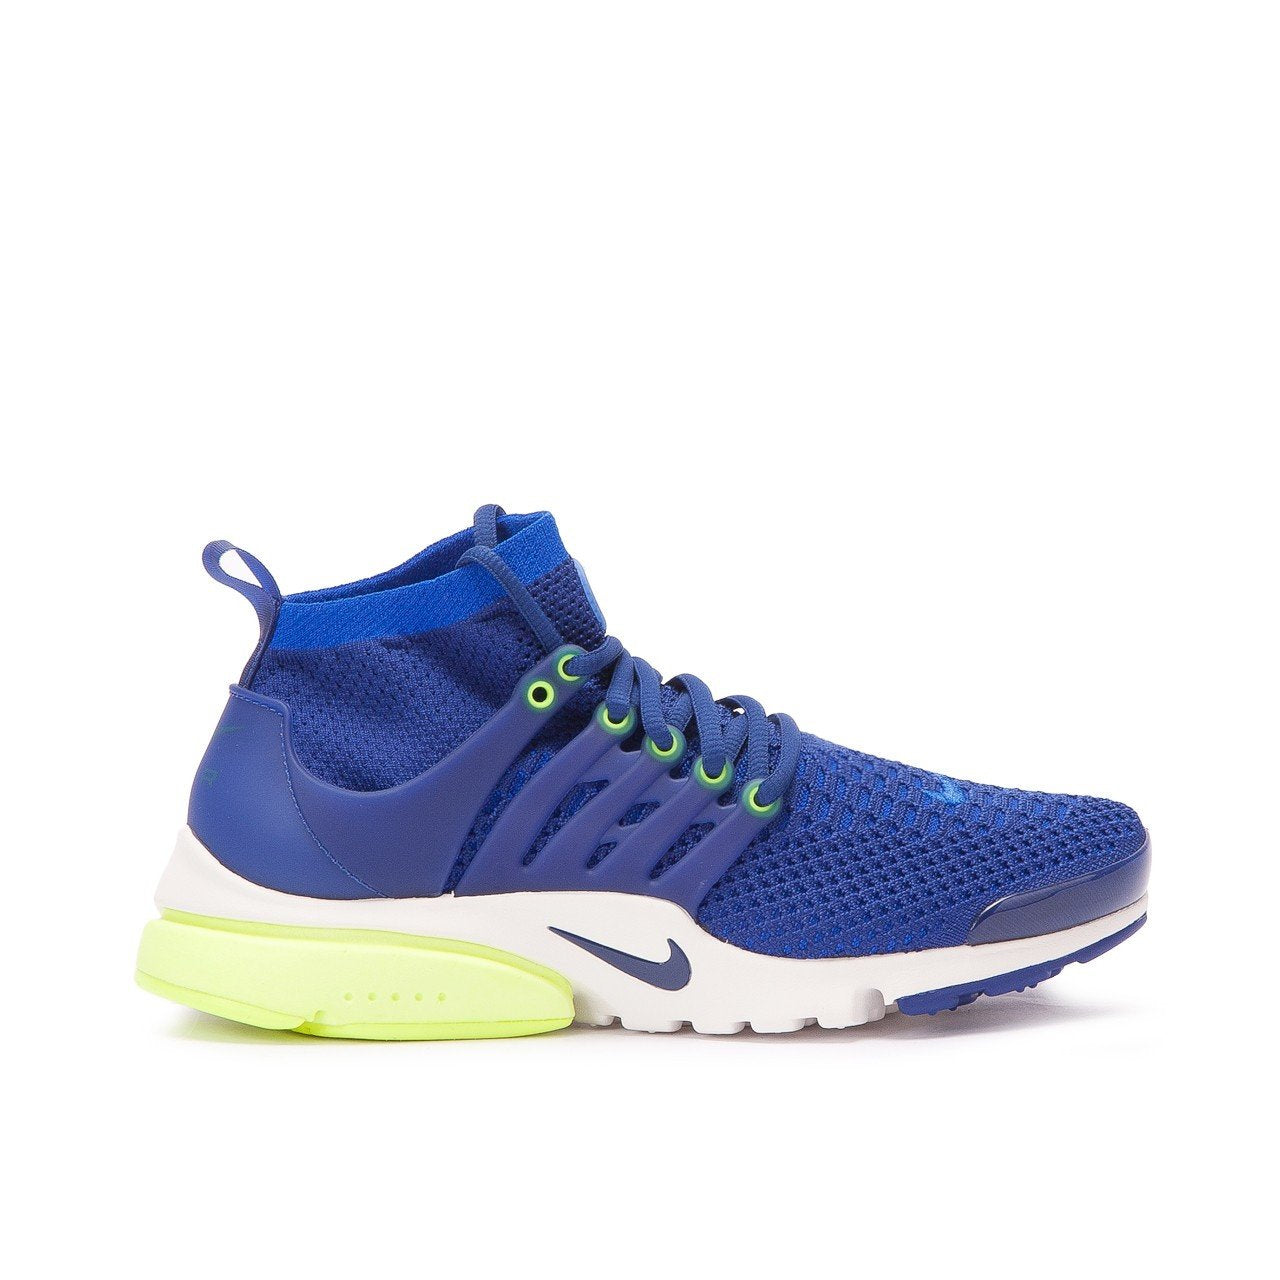 cheaper 56caf 9111e Women s Nike Air Presto FlyKnit Ultra Running 835738 401